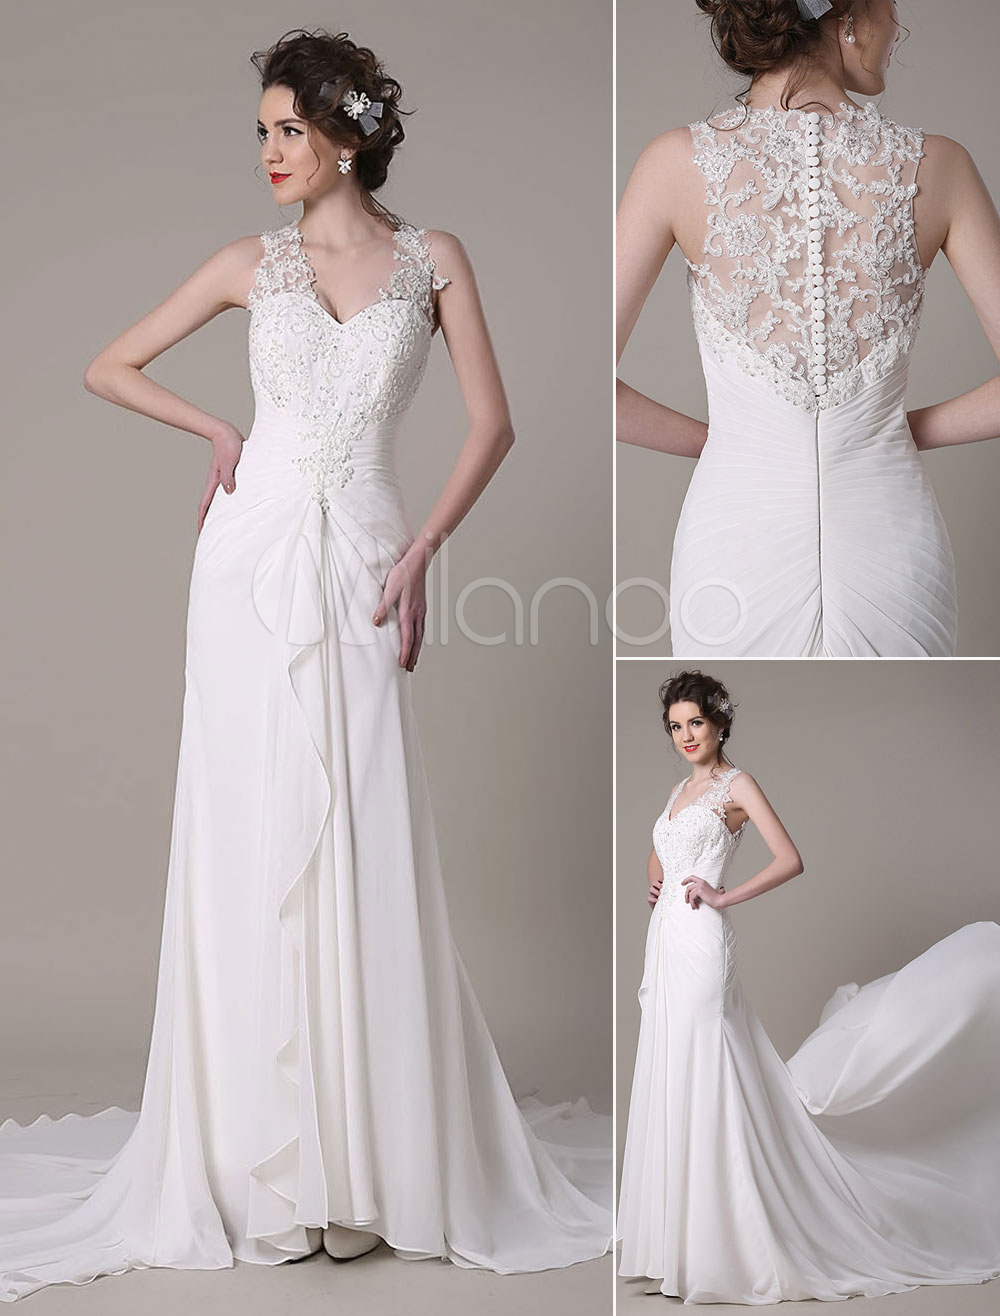 Ivory Wedding Dress Mermaid Queen Anne Lace Chiffon Wedding Gown Milanoo